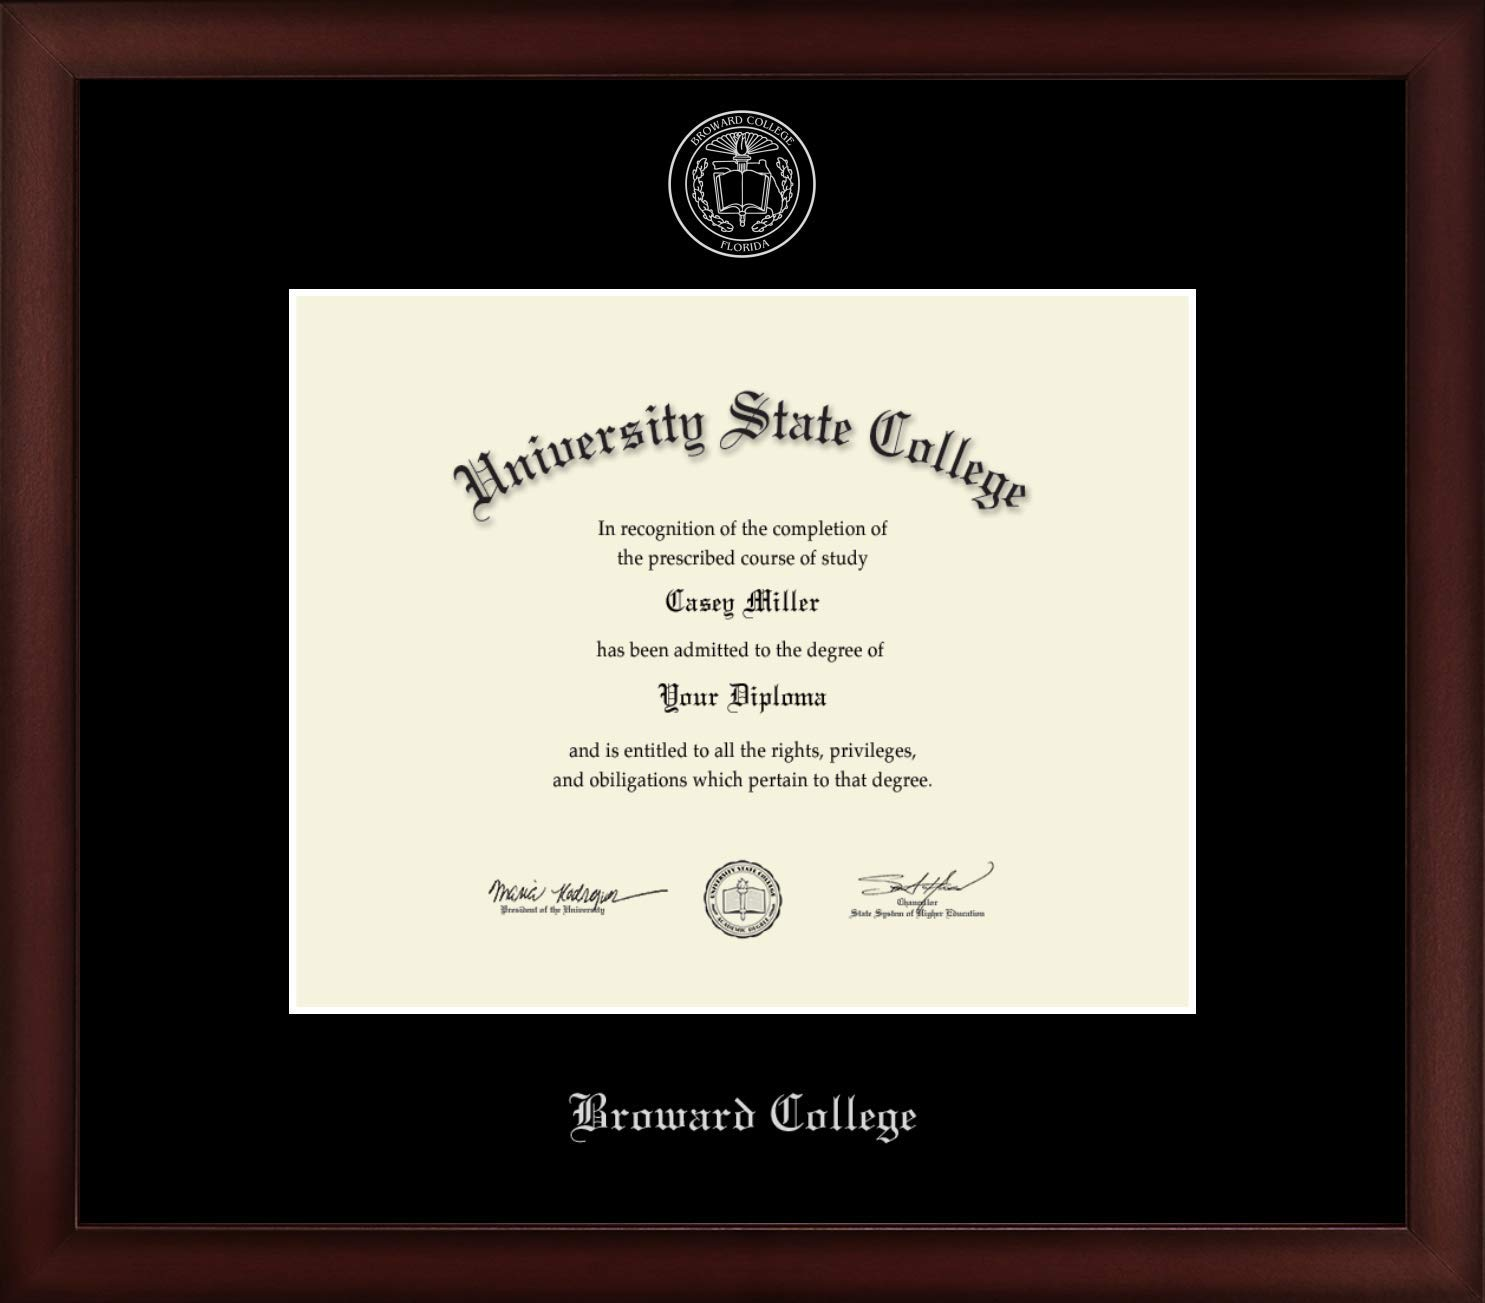 Broward College - Officially Licensed - Silver Embossed Diploma Frame - Diploma Size 10'' x 8''